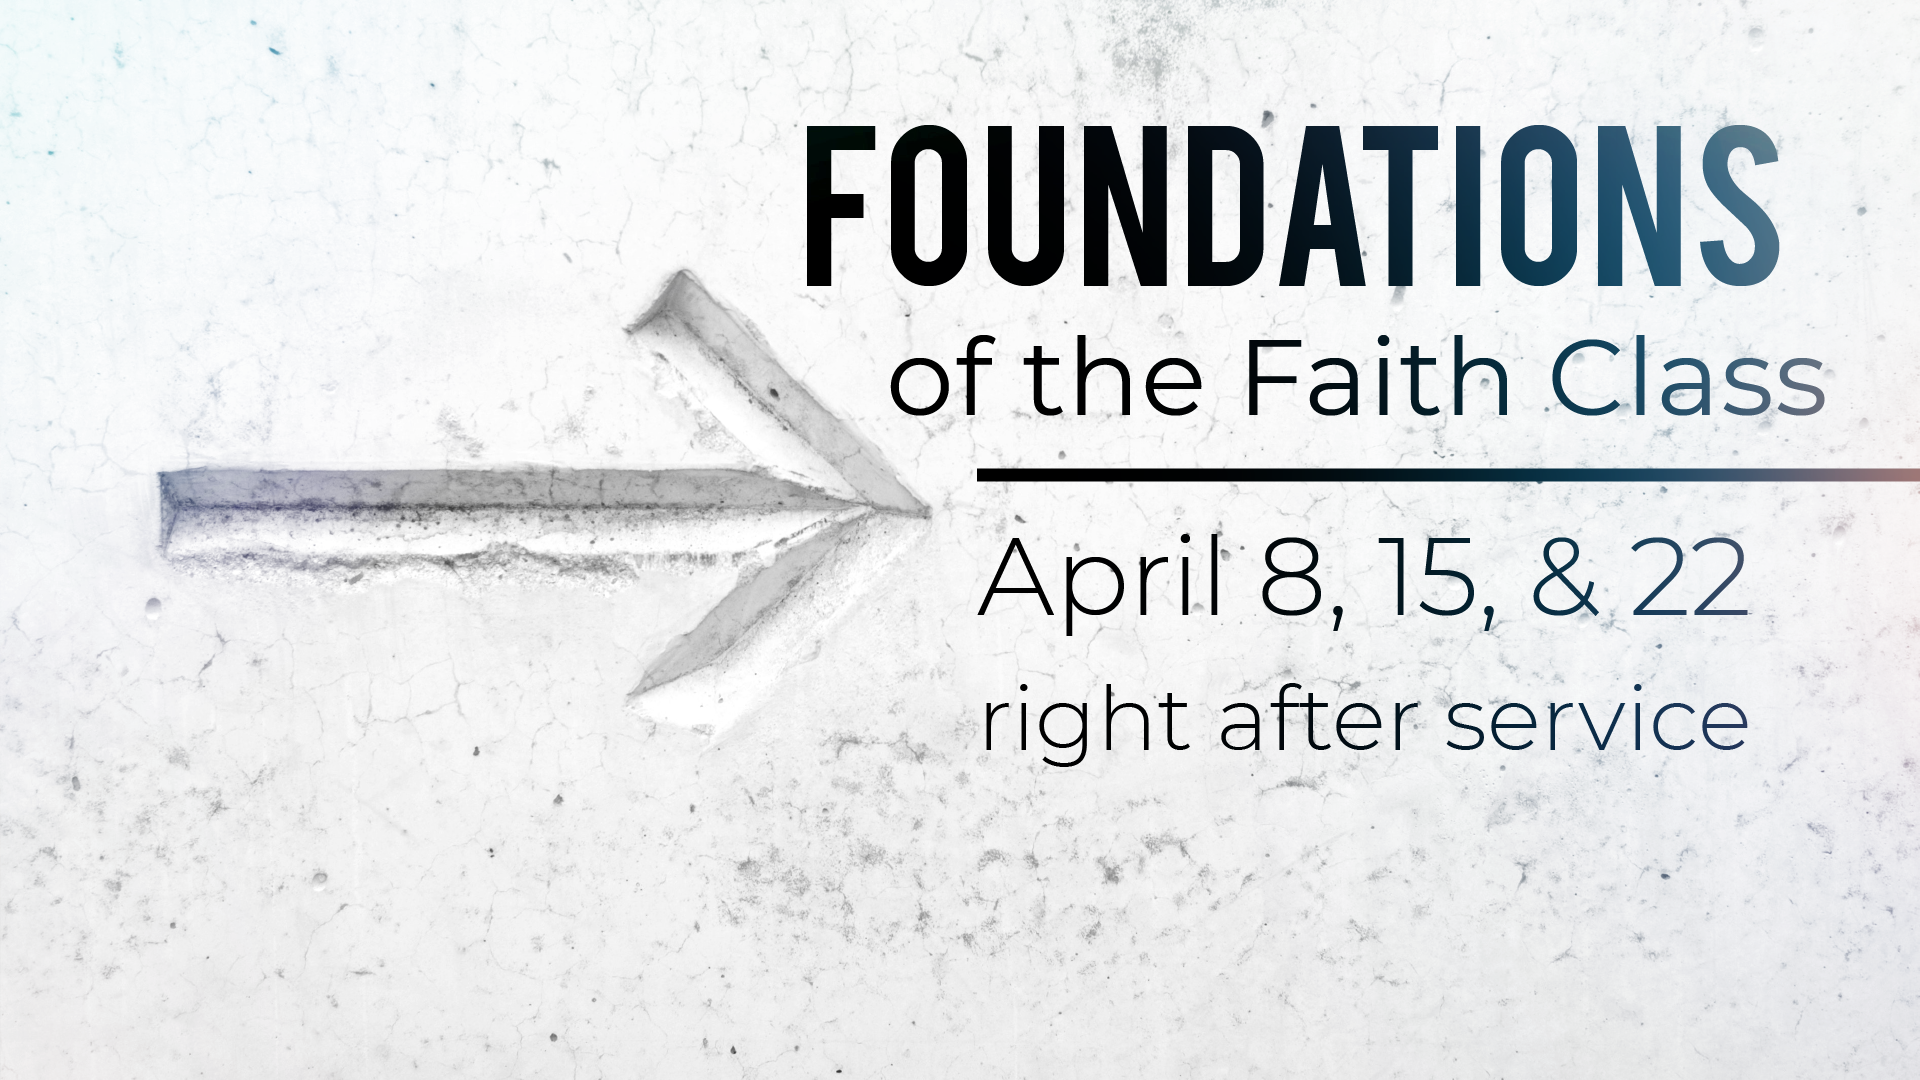 Foundations of the Faith Class at CCE